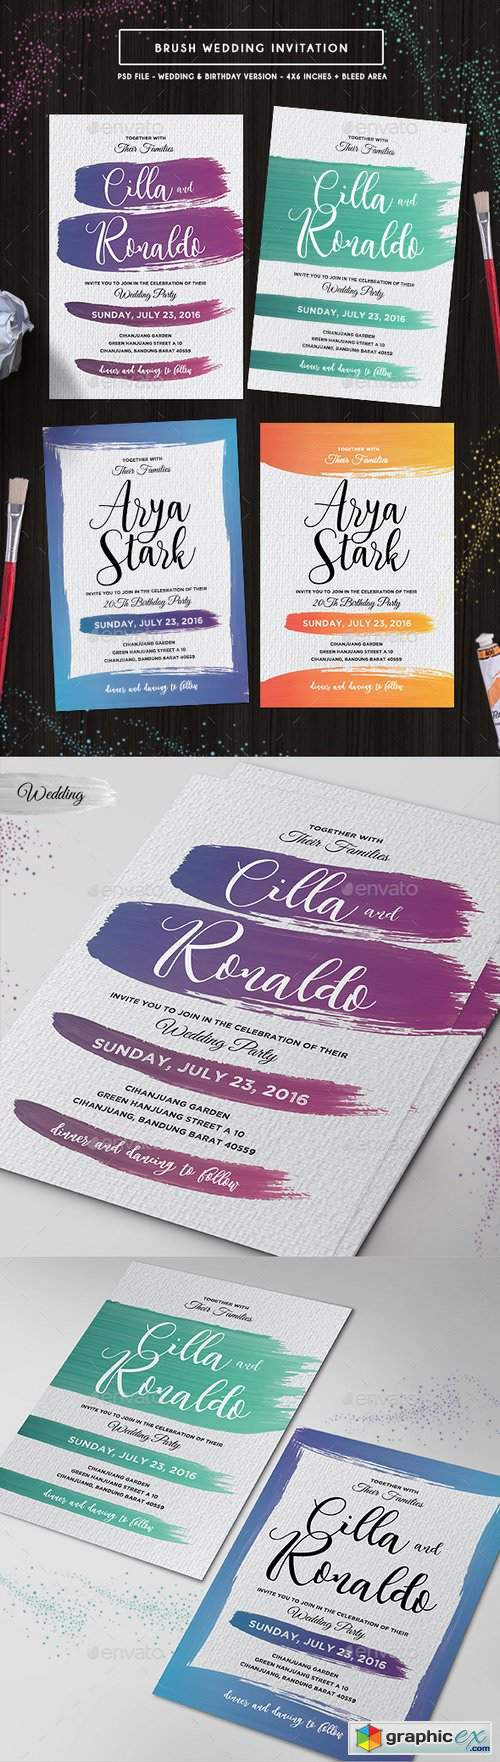 Brush Wedding Invitation